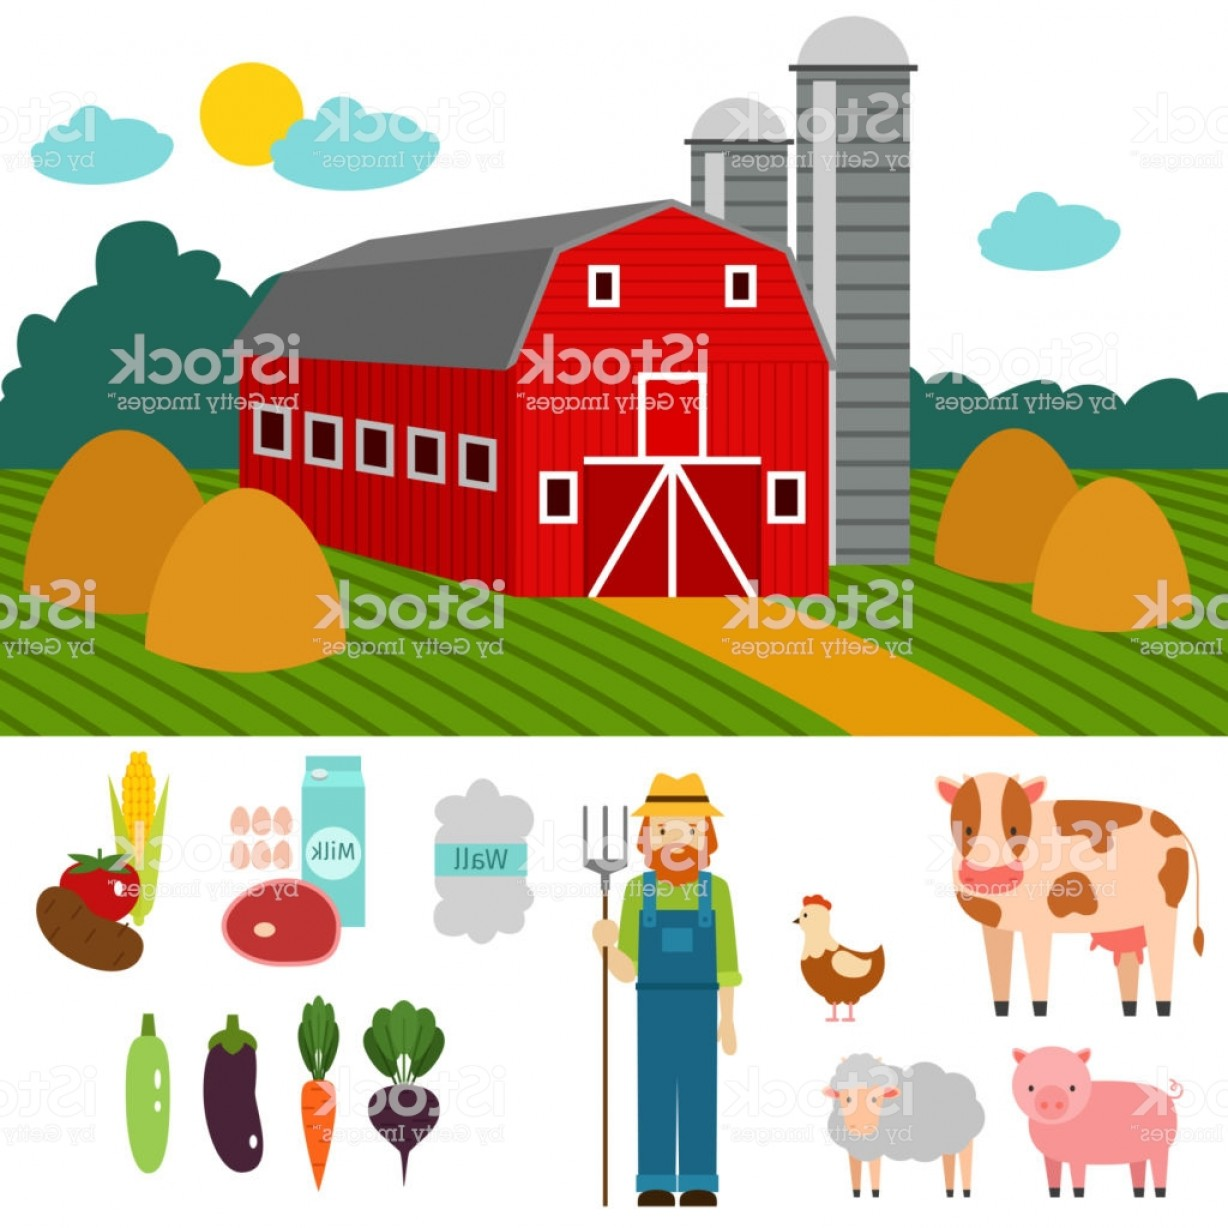 Farm Vector Illustration: Farm Vector Illustration Nature Food Harvesting Grain Agriculture Growth Cultivated Gm